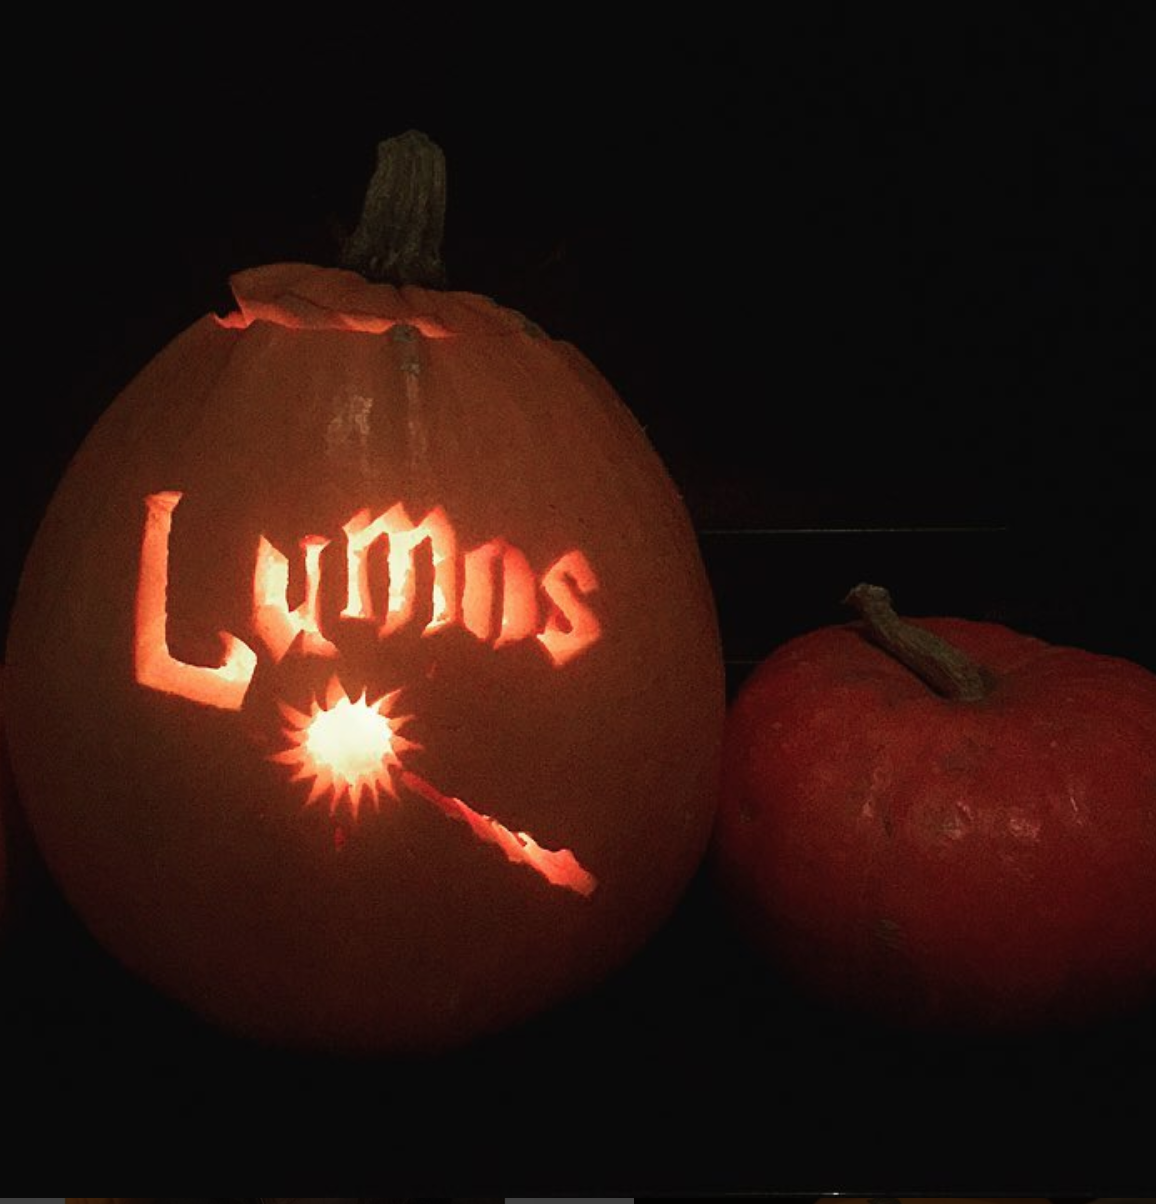 Harry Potter Pumpkin from goodlassy on Instagram and other